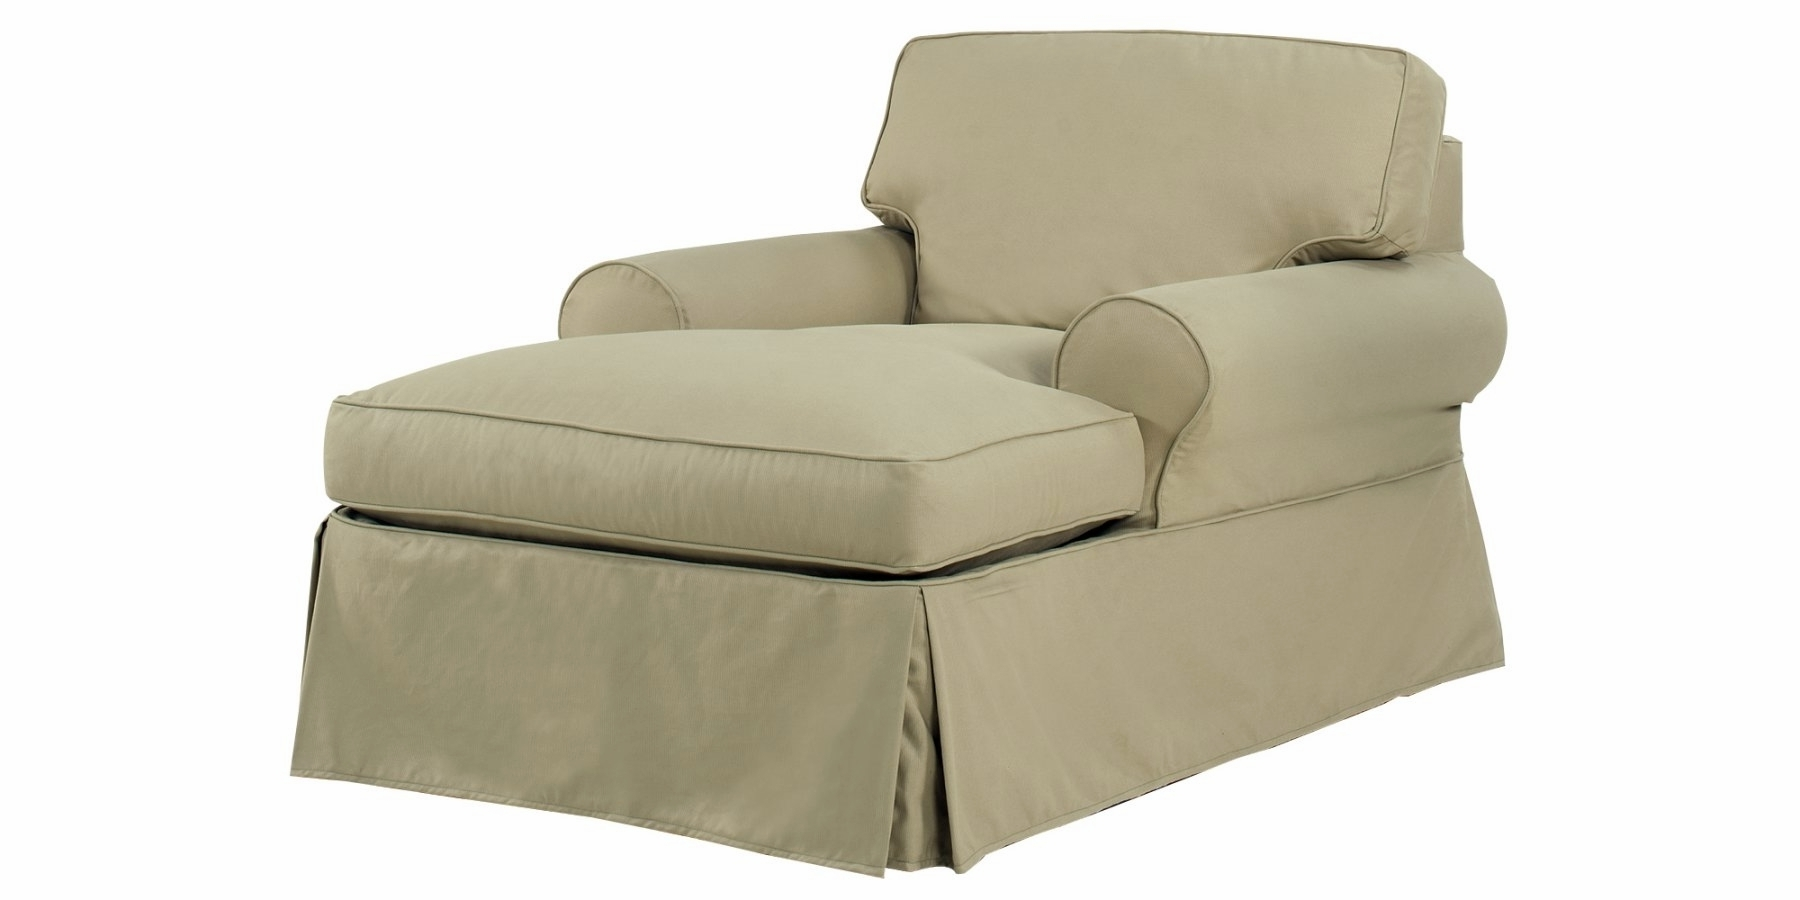 Chaise Lounge Chairs For Two Within Well Known Chaise Lounge Chairs Two Arms • Lounge Chairs Ideas (View 13 of 15)